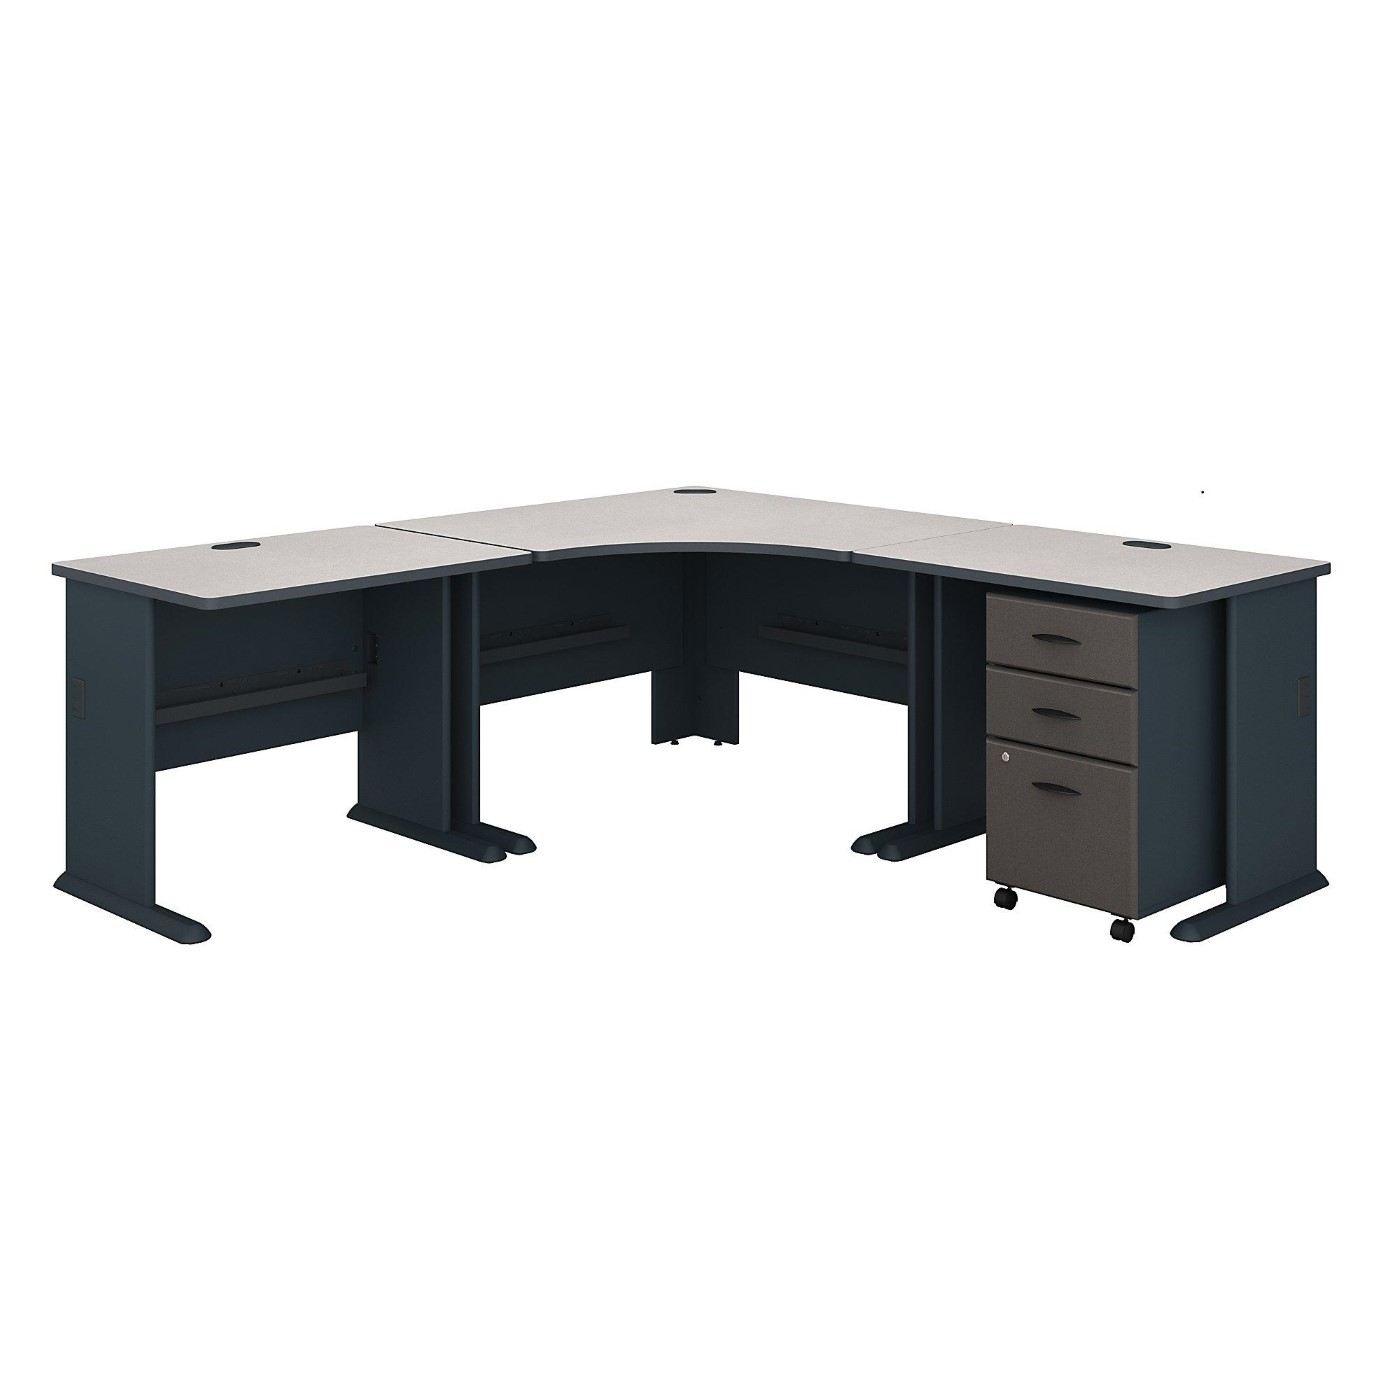 BUSH BUSINESS FURNITURE SERIES A 84W X 84D CORNER DESK WITH MOBILE FILE CABINET. FREE SHIPPING</font></b></font></b>&#x1F384<font color=red><b>ERGONOMICHOME HOLIDAY SALE - ENDS DEC. 17, 2019</b></font>&#x1F384